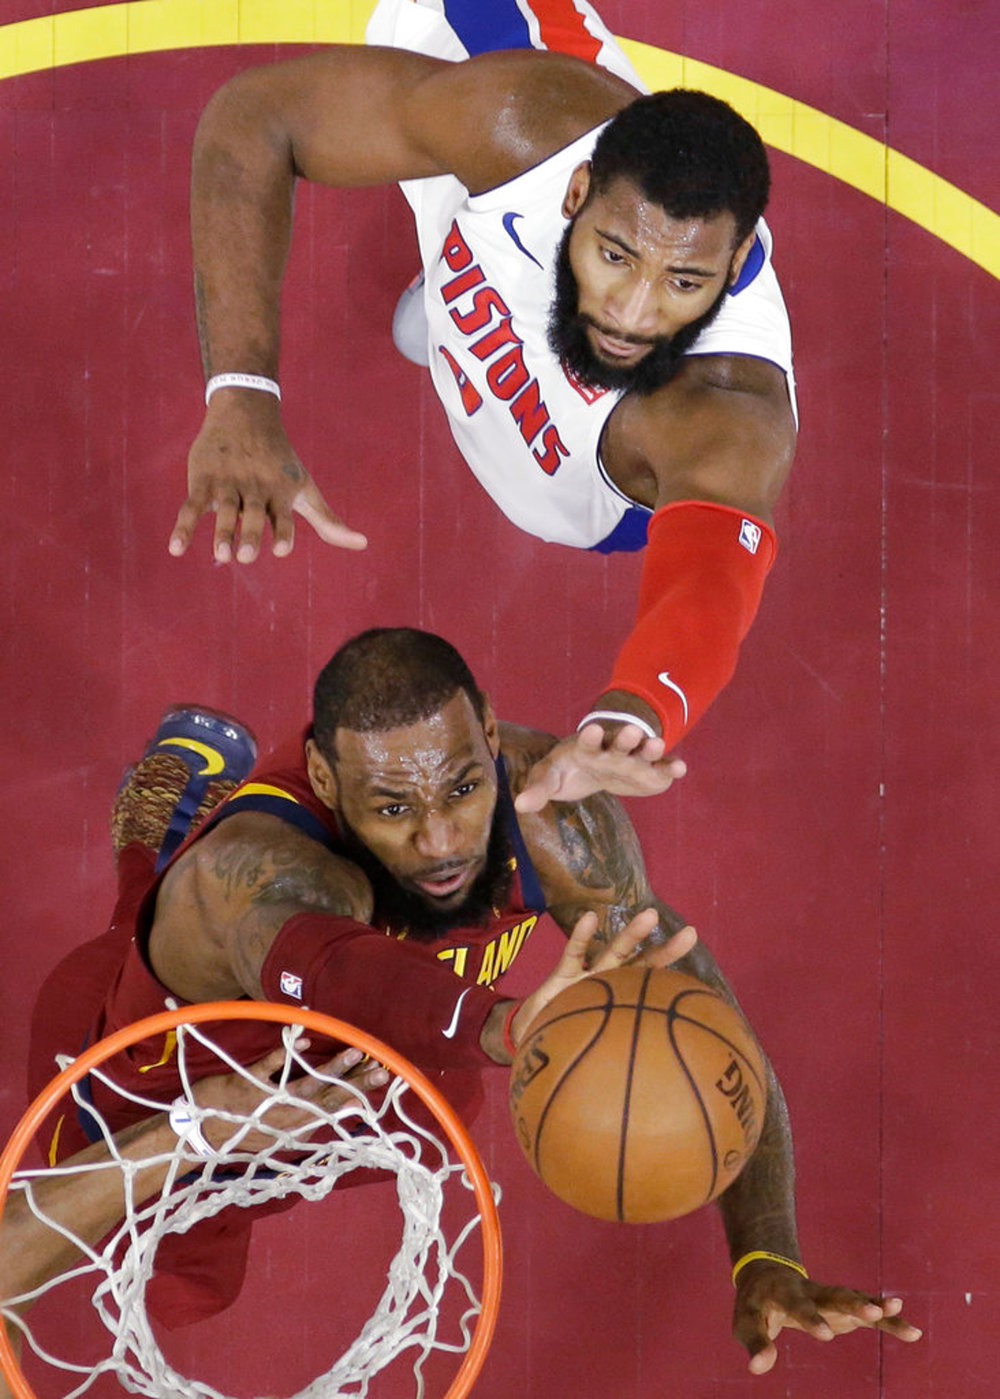 Cleveland Cavaliers' LeBron James, left, drives to the basket against Detroit Pistons' Andre Drummond in the first half of an NBA basketball game, Sunday, Jan. 28, 2018, in Cleveland. The Cavaliers won 121-104. (AP Photo/Tony Dejak)